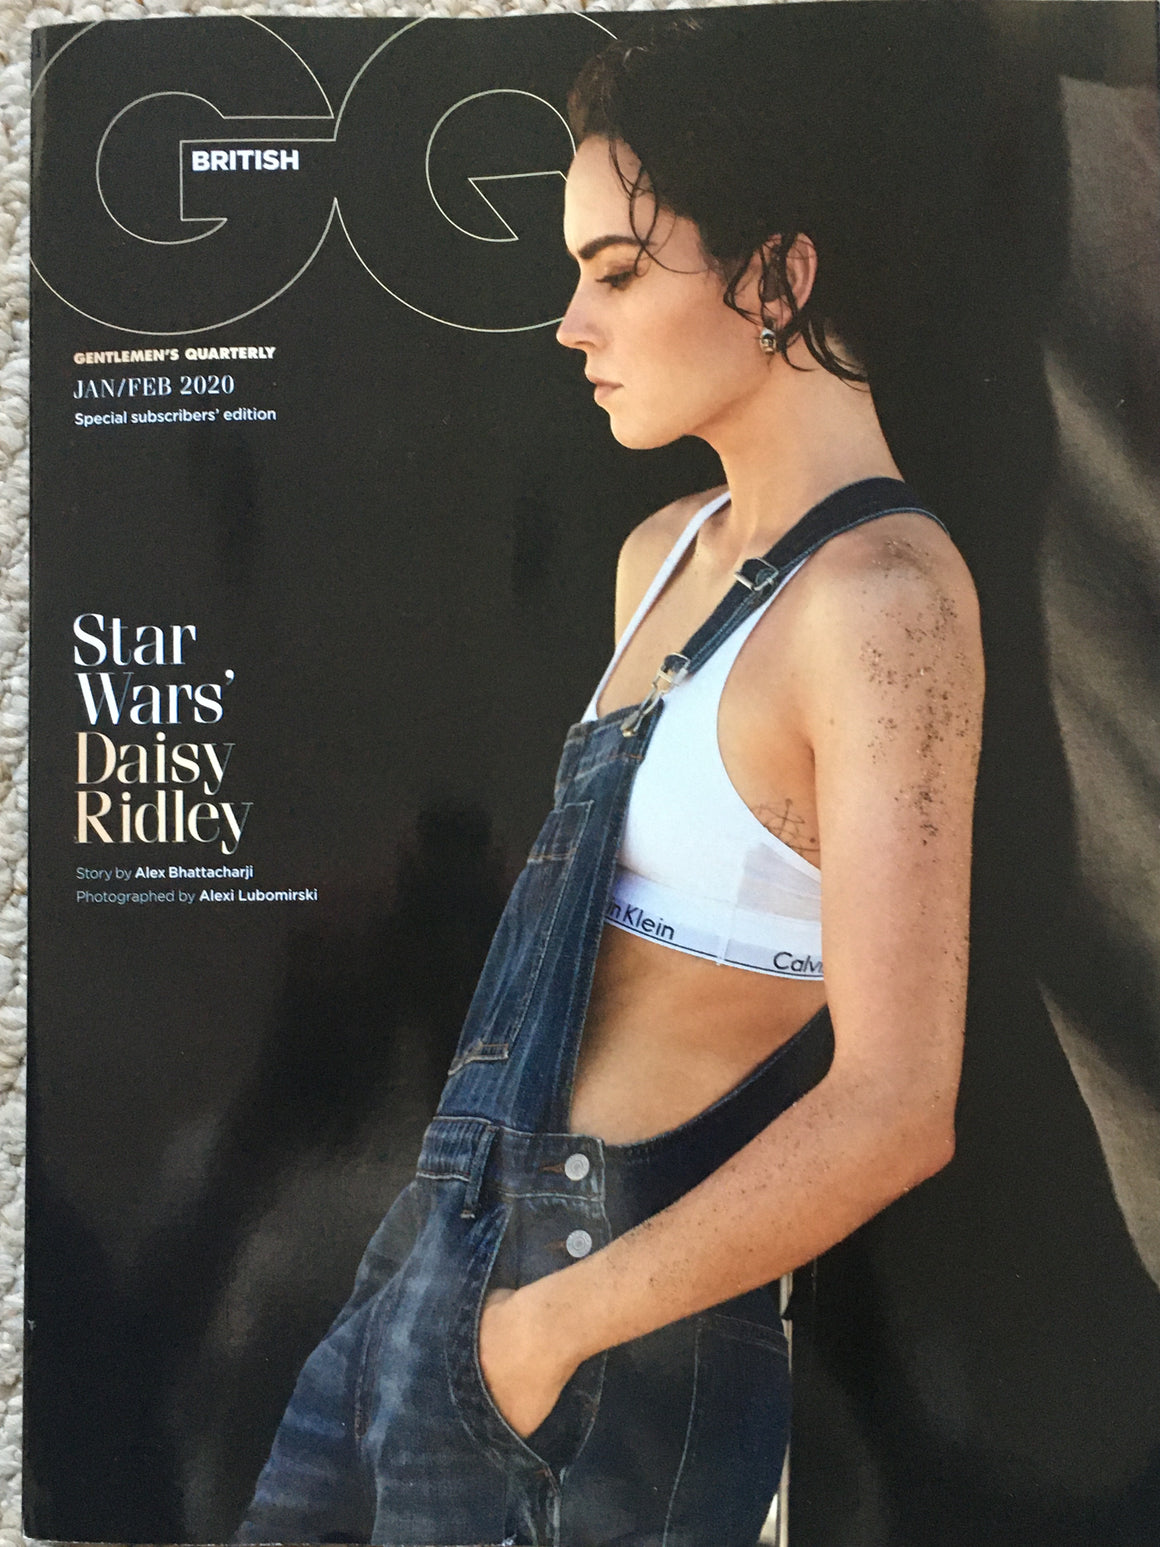 UK GQ Magazine December 2019: Daisy Ridley Limited Subscribers Cover